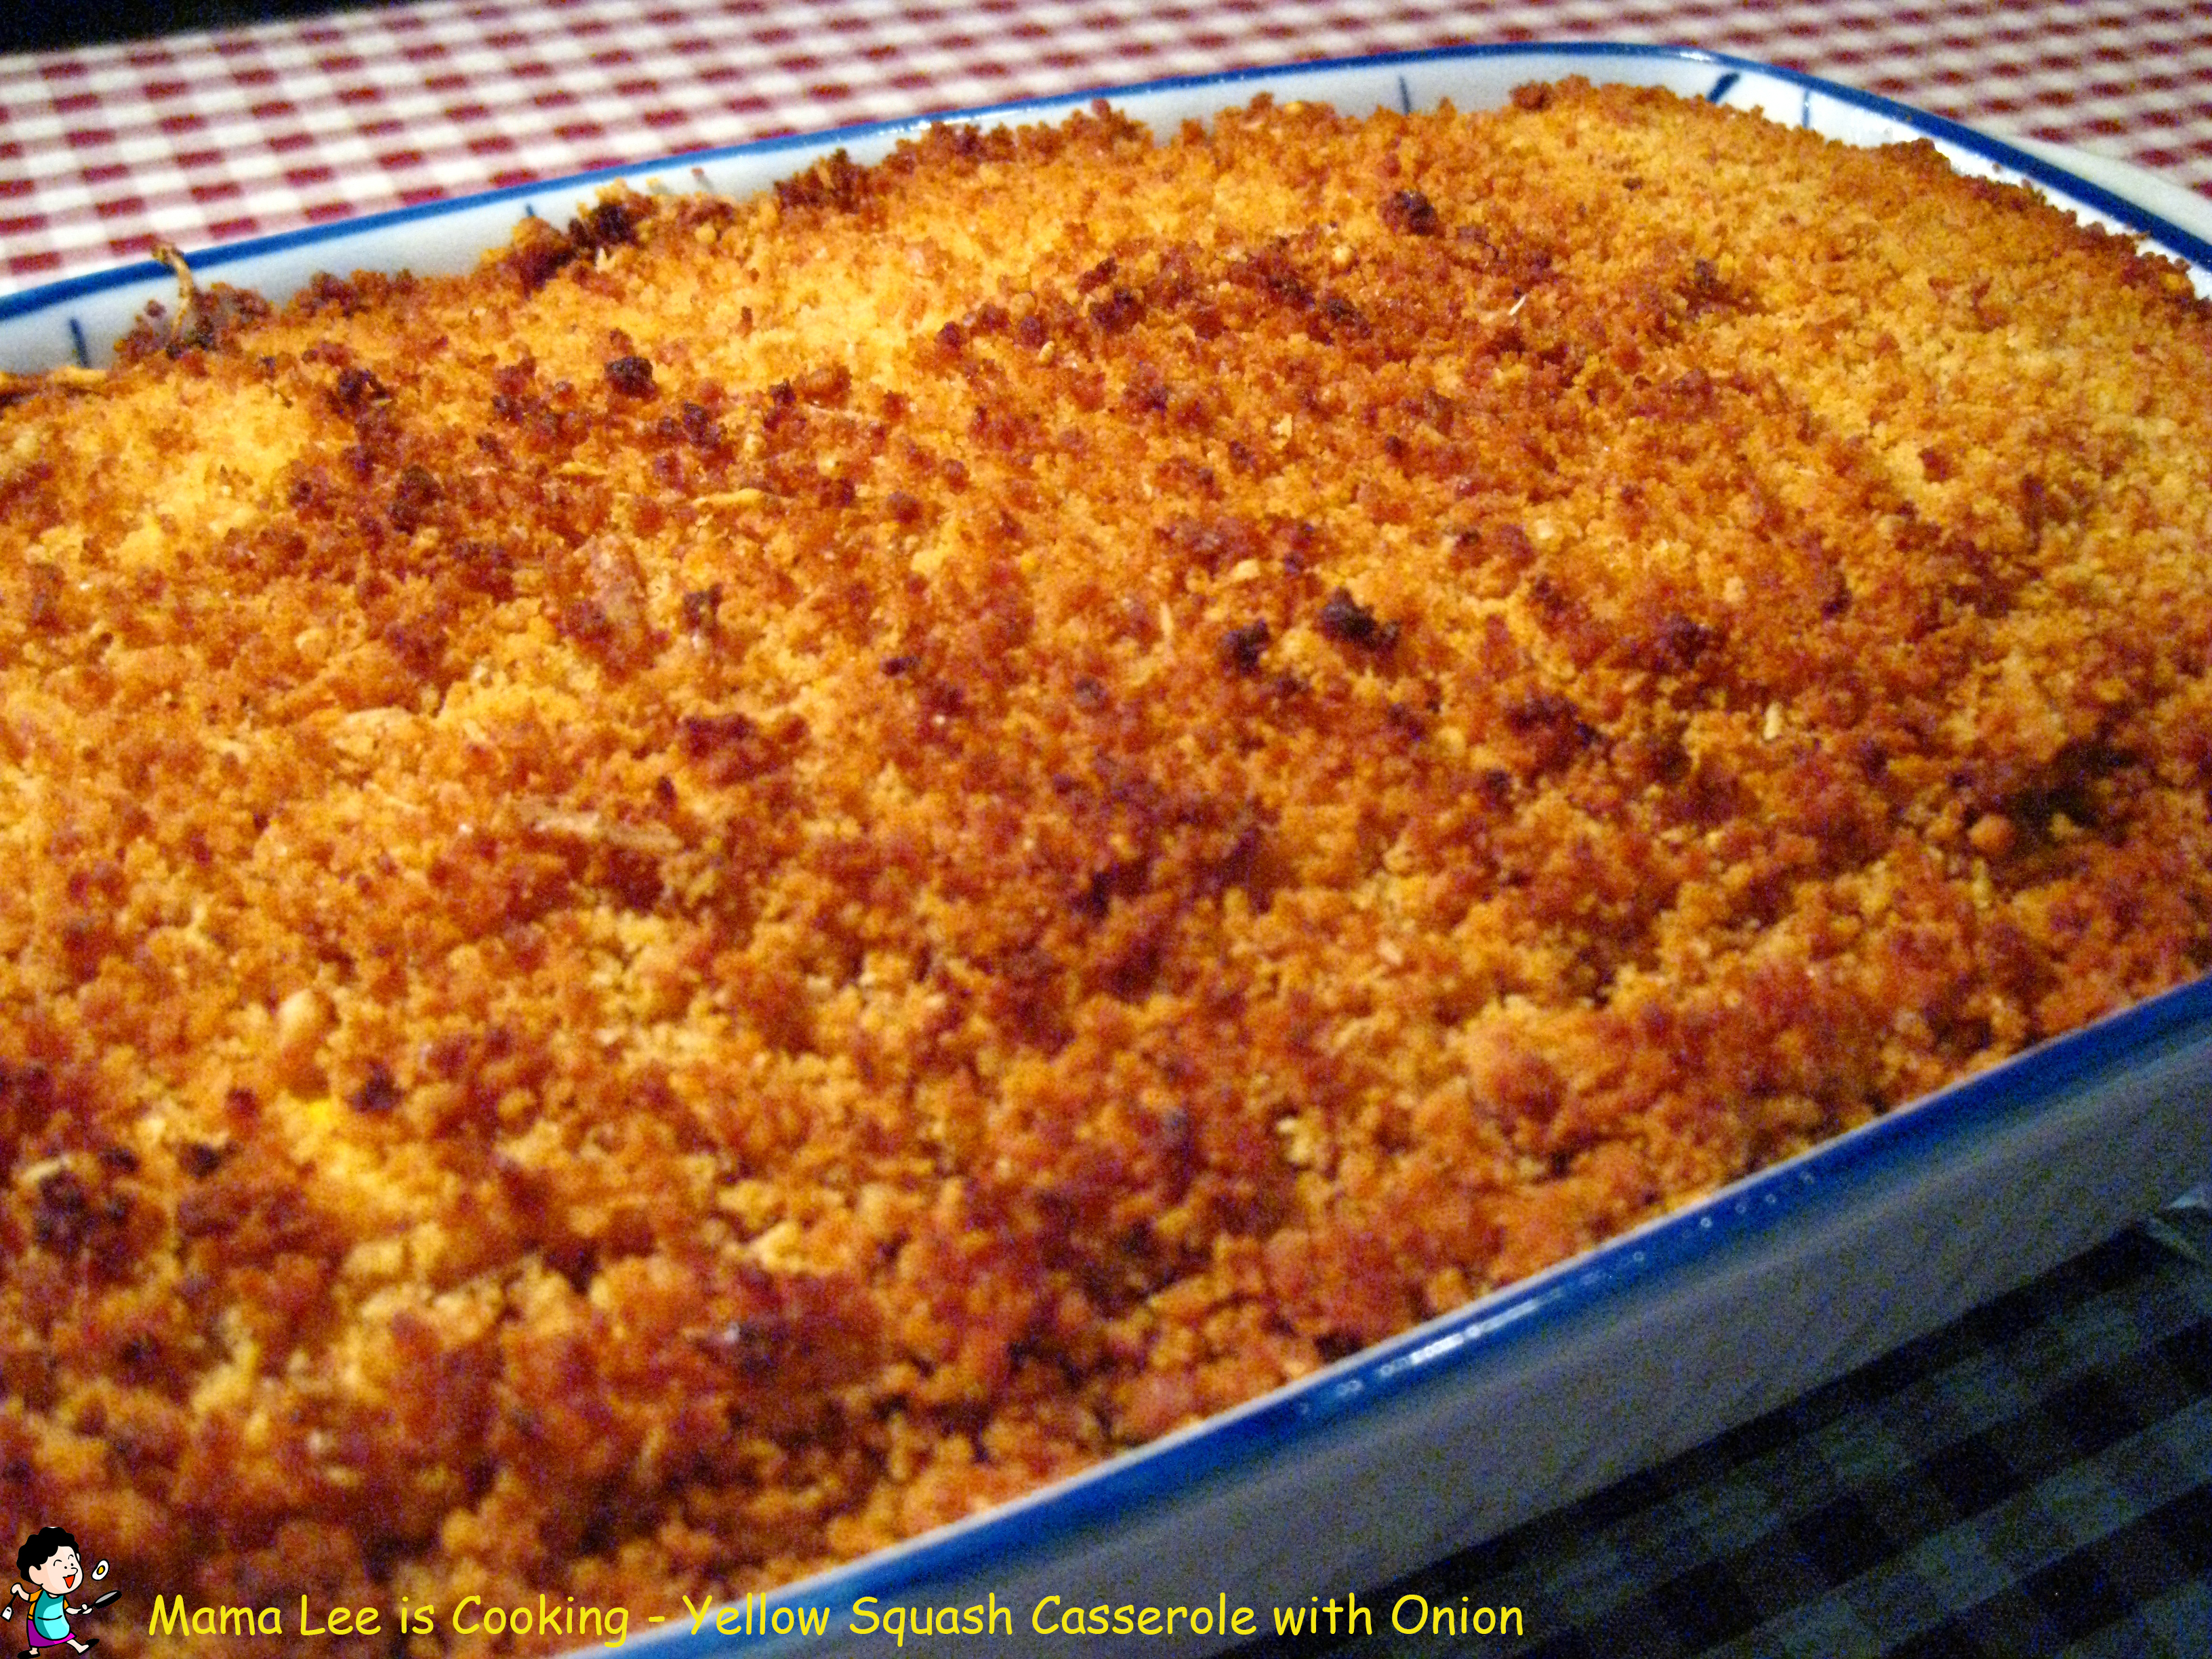 Yellow Squash Casserole with Onion